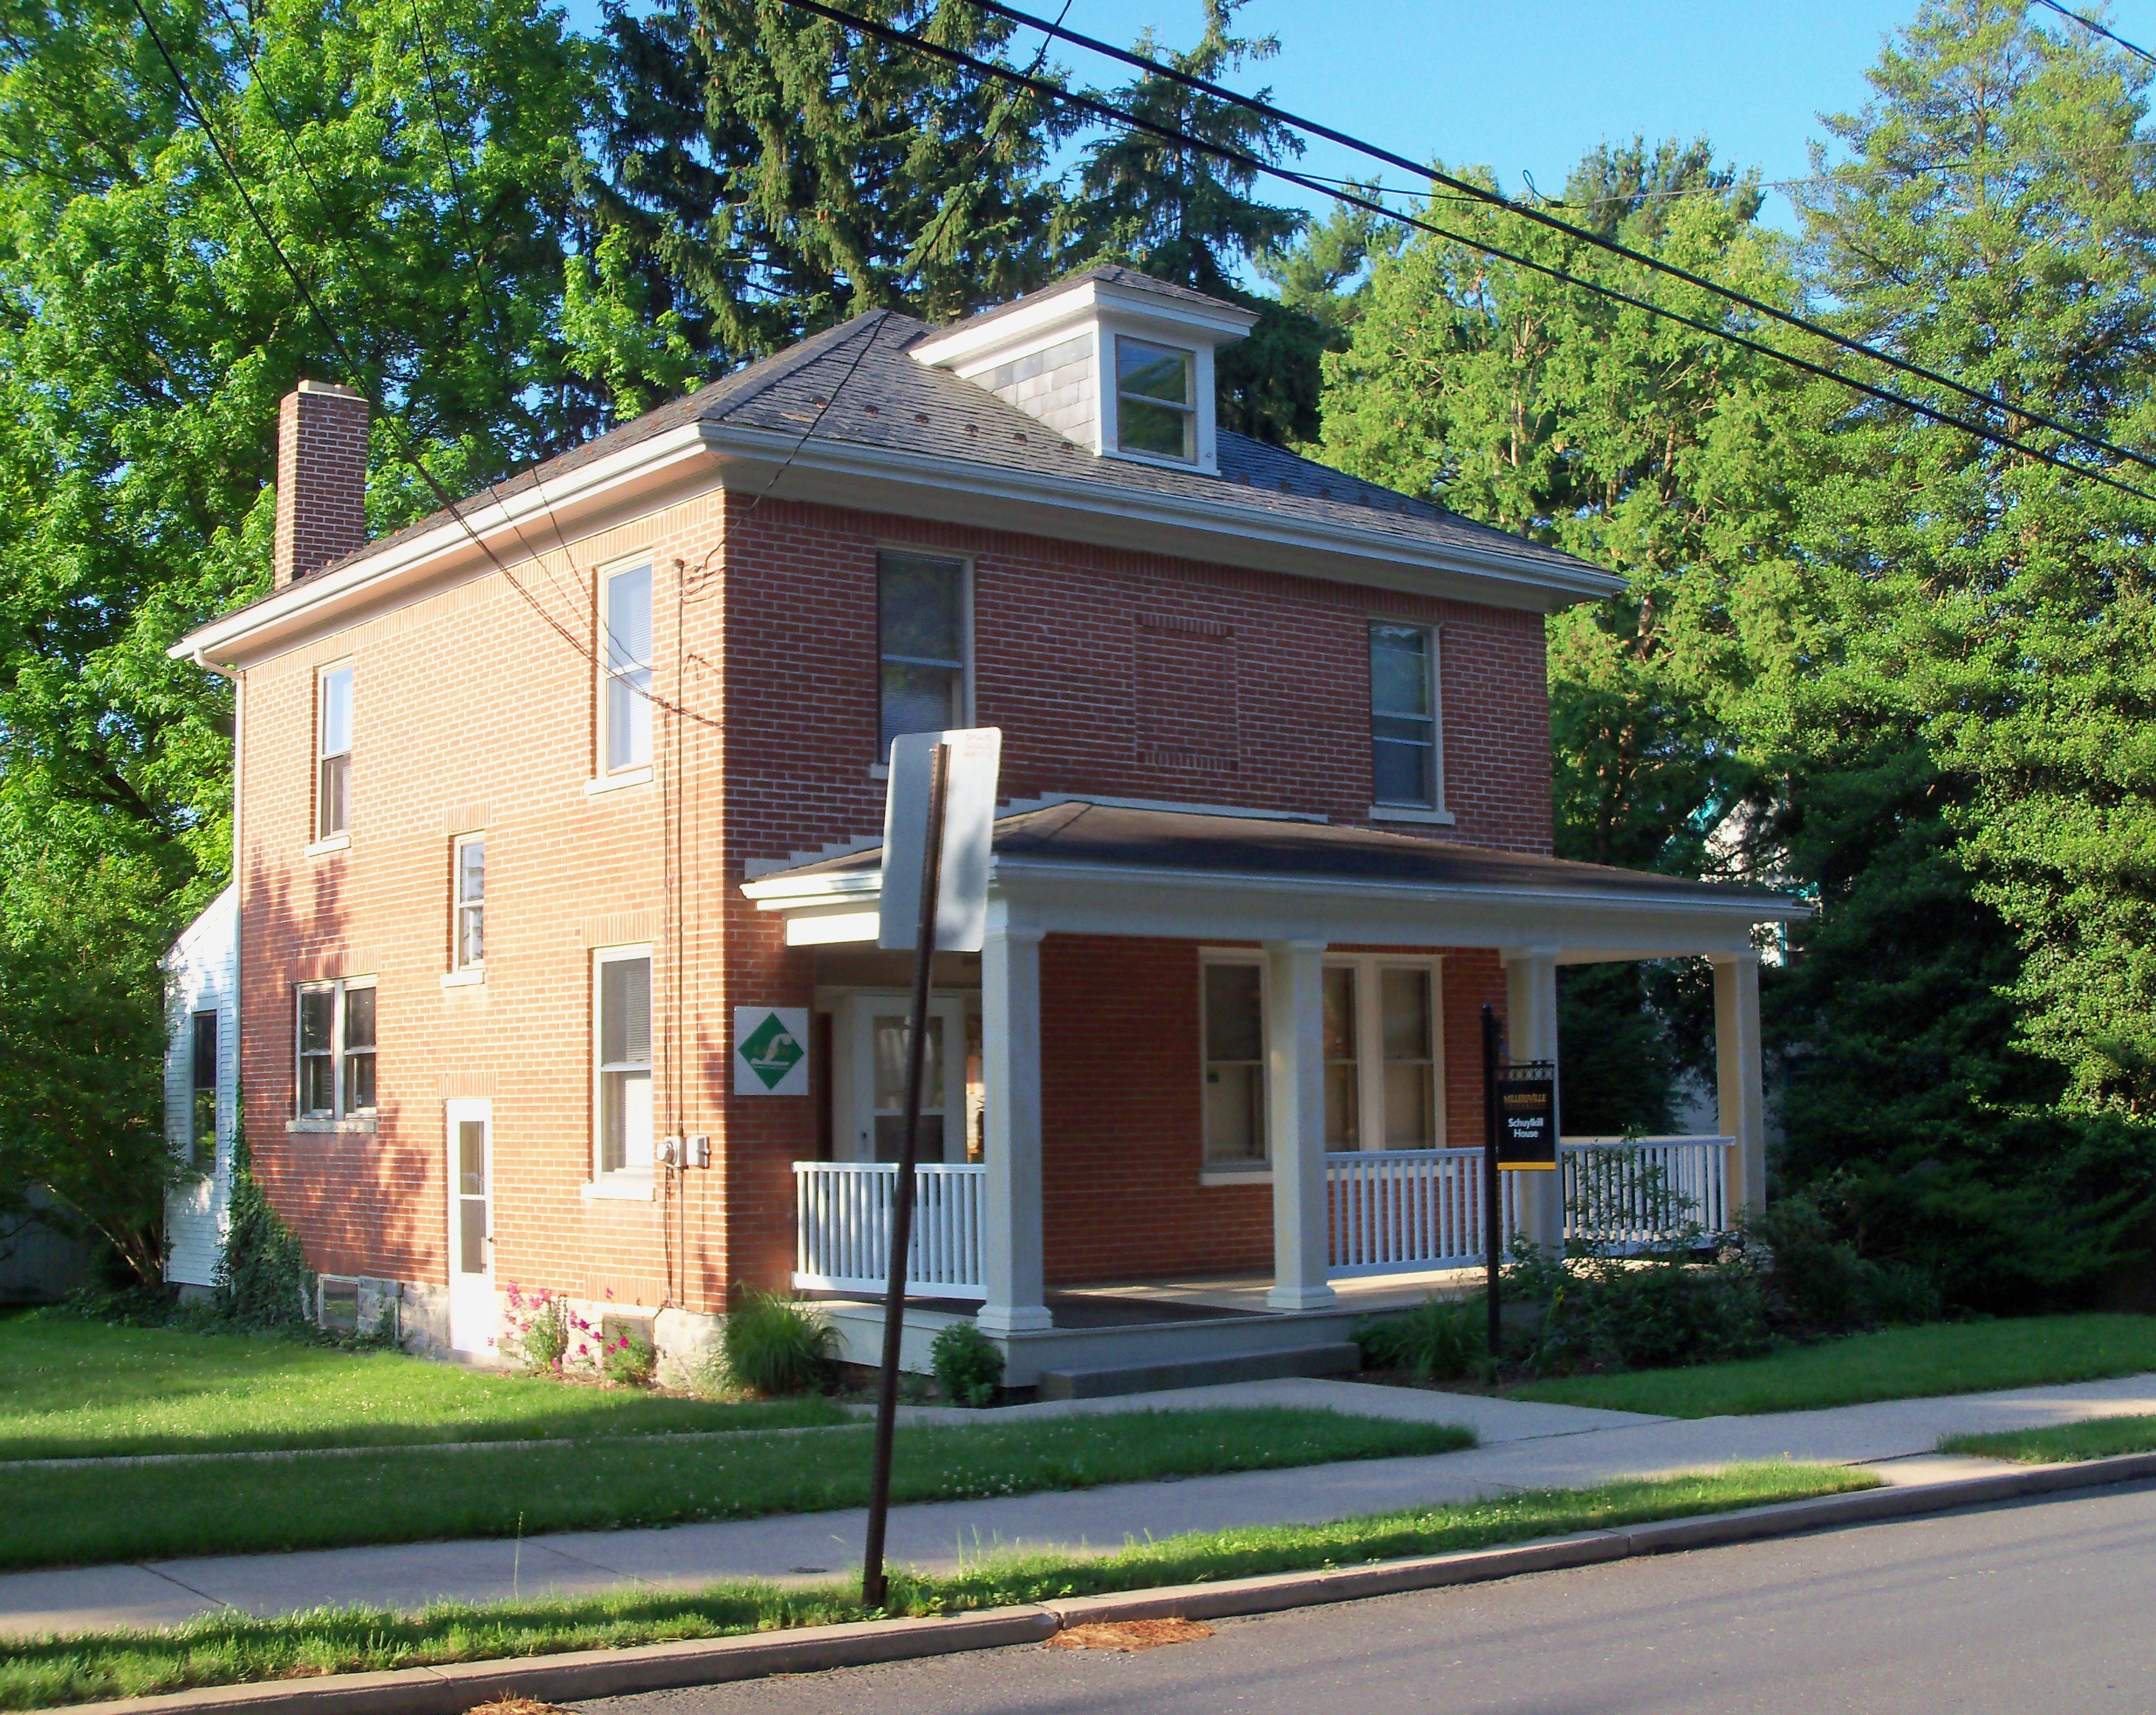 File:Schuylkill House - panoramio.jpg - Wikimedia Commons